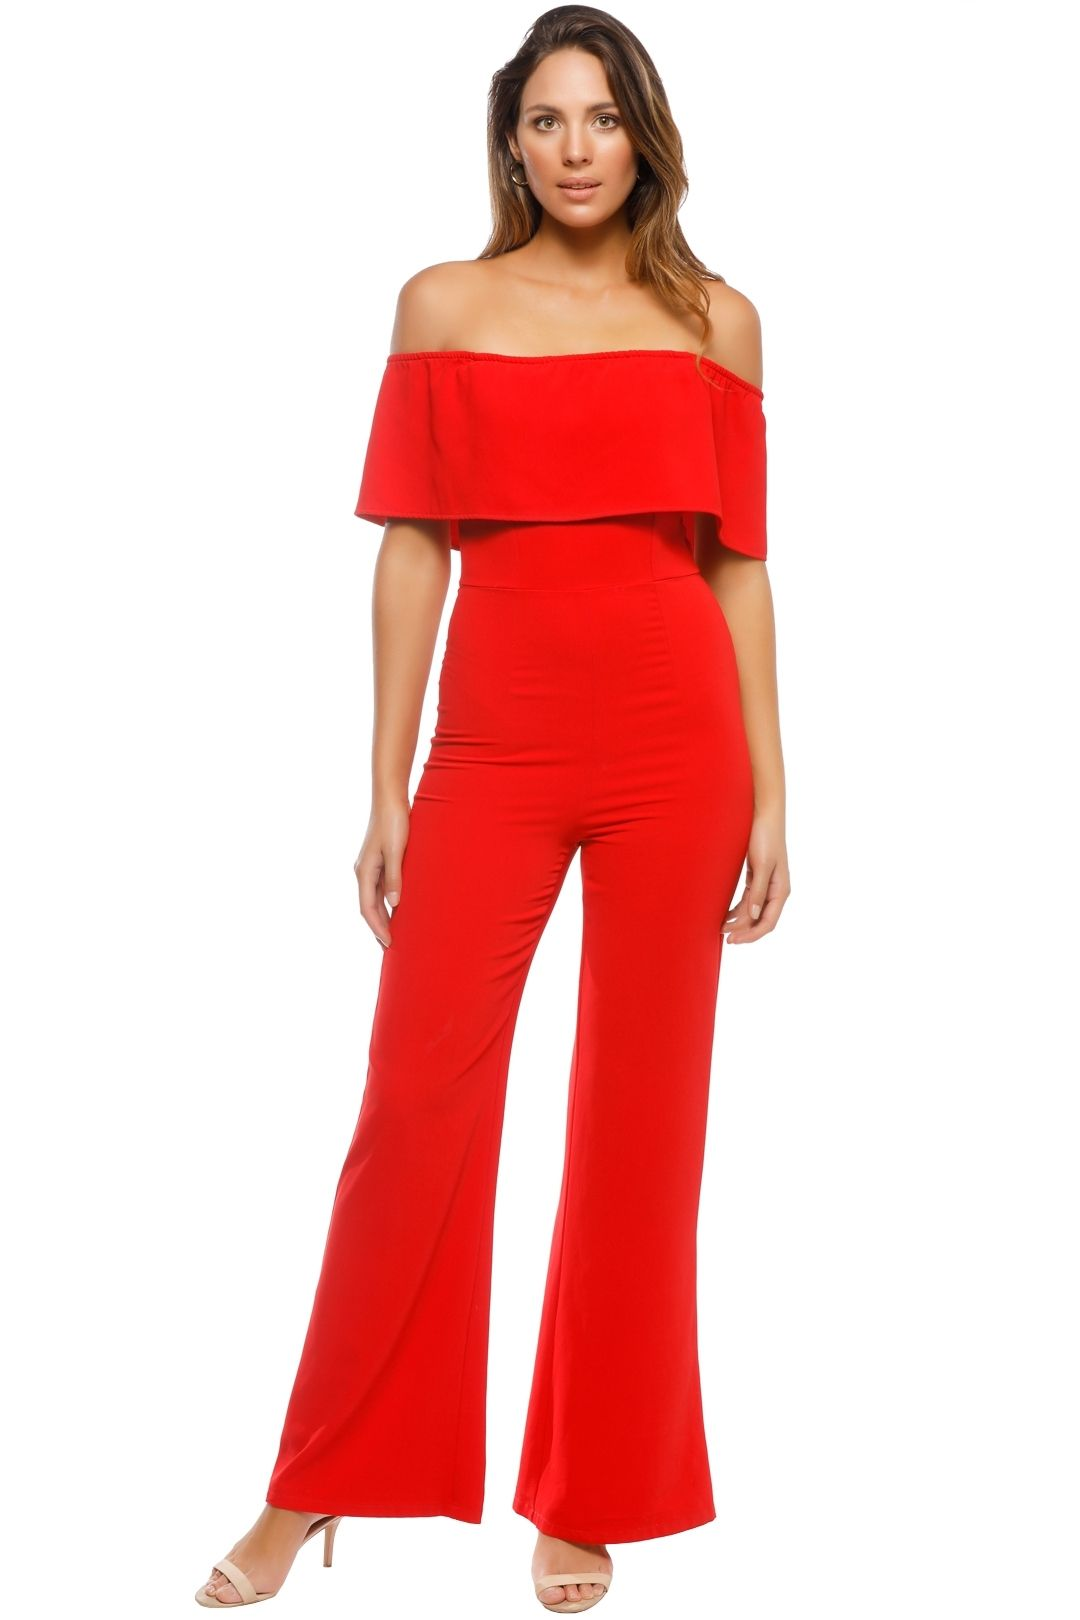 Mossman - The Blank Stare Jumpsuit - Red - Front